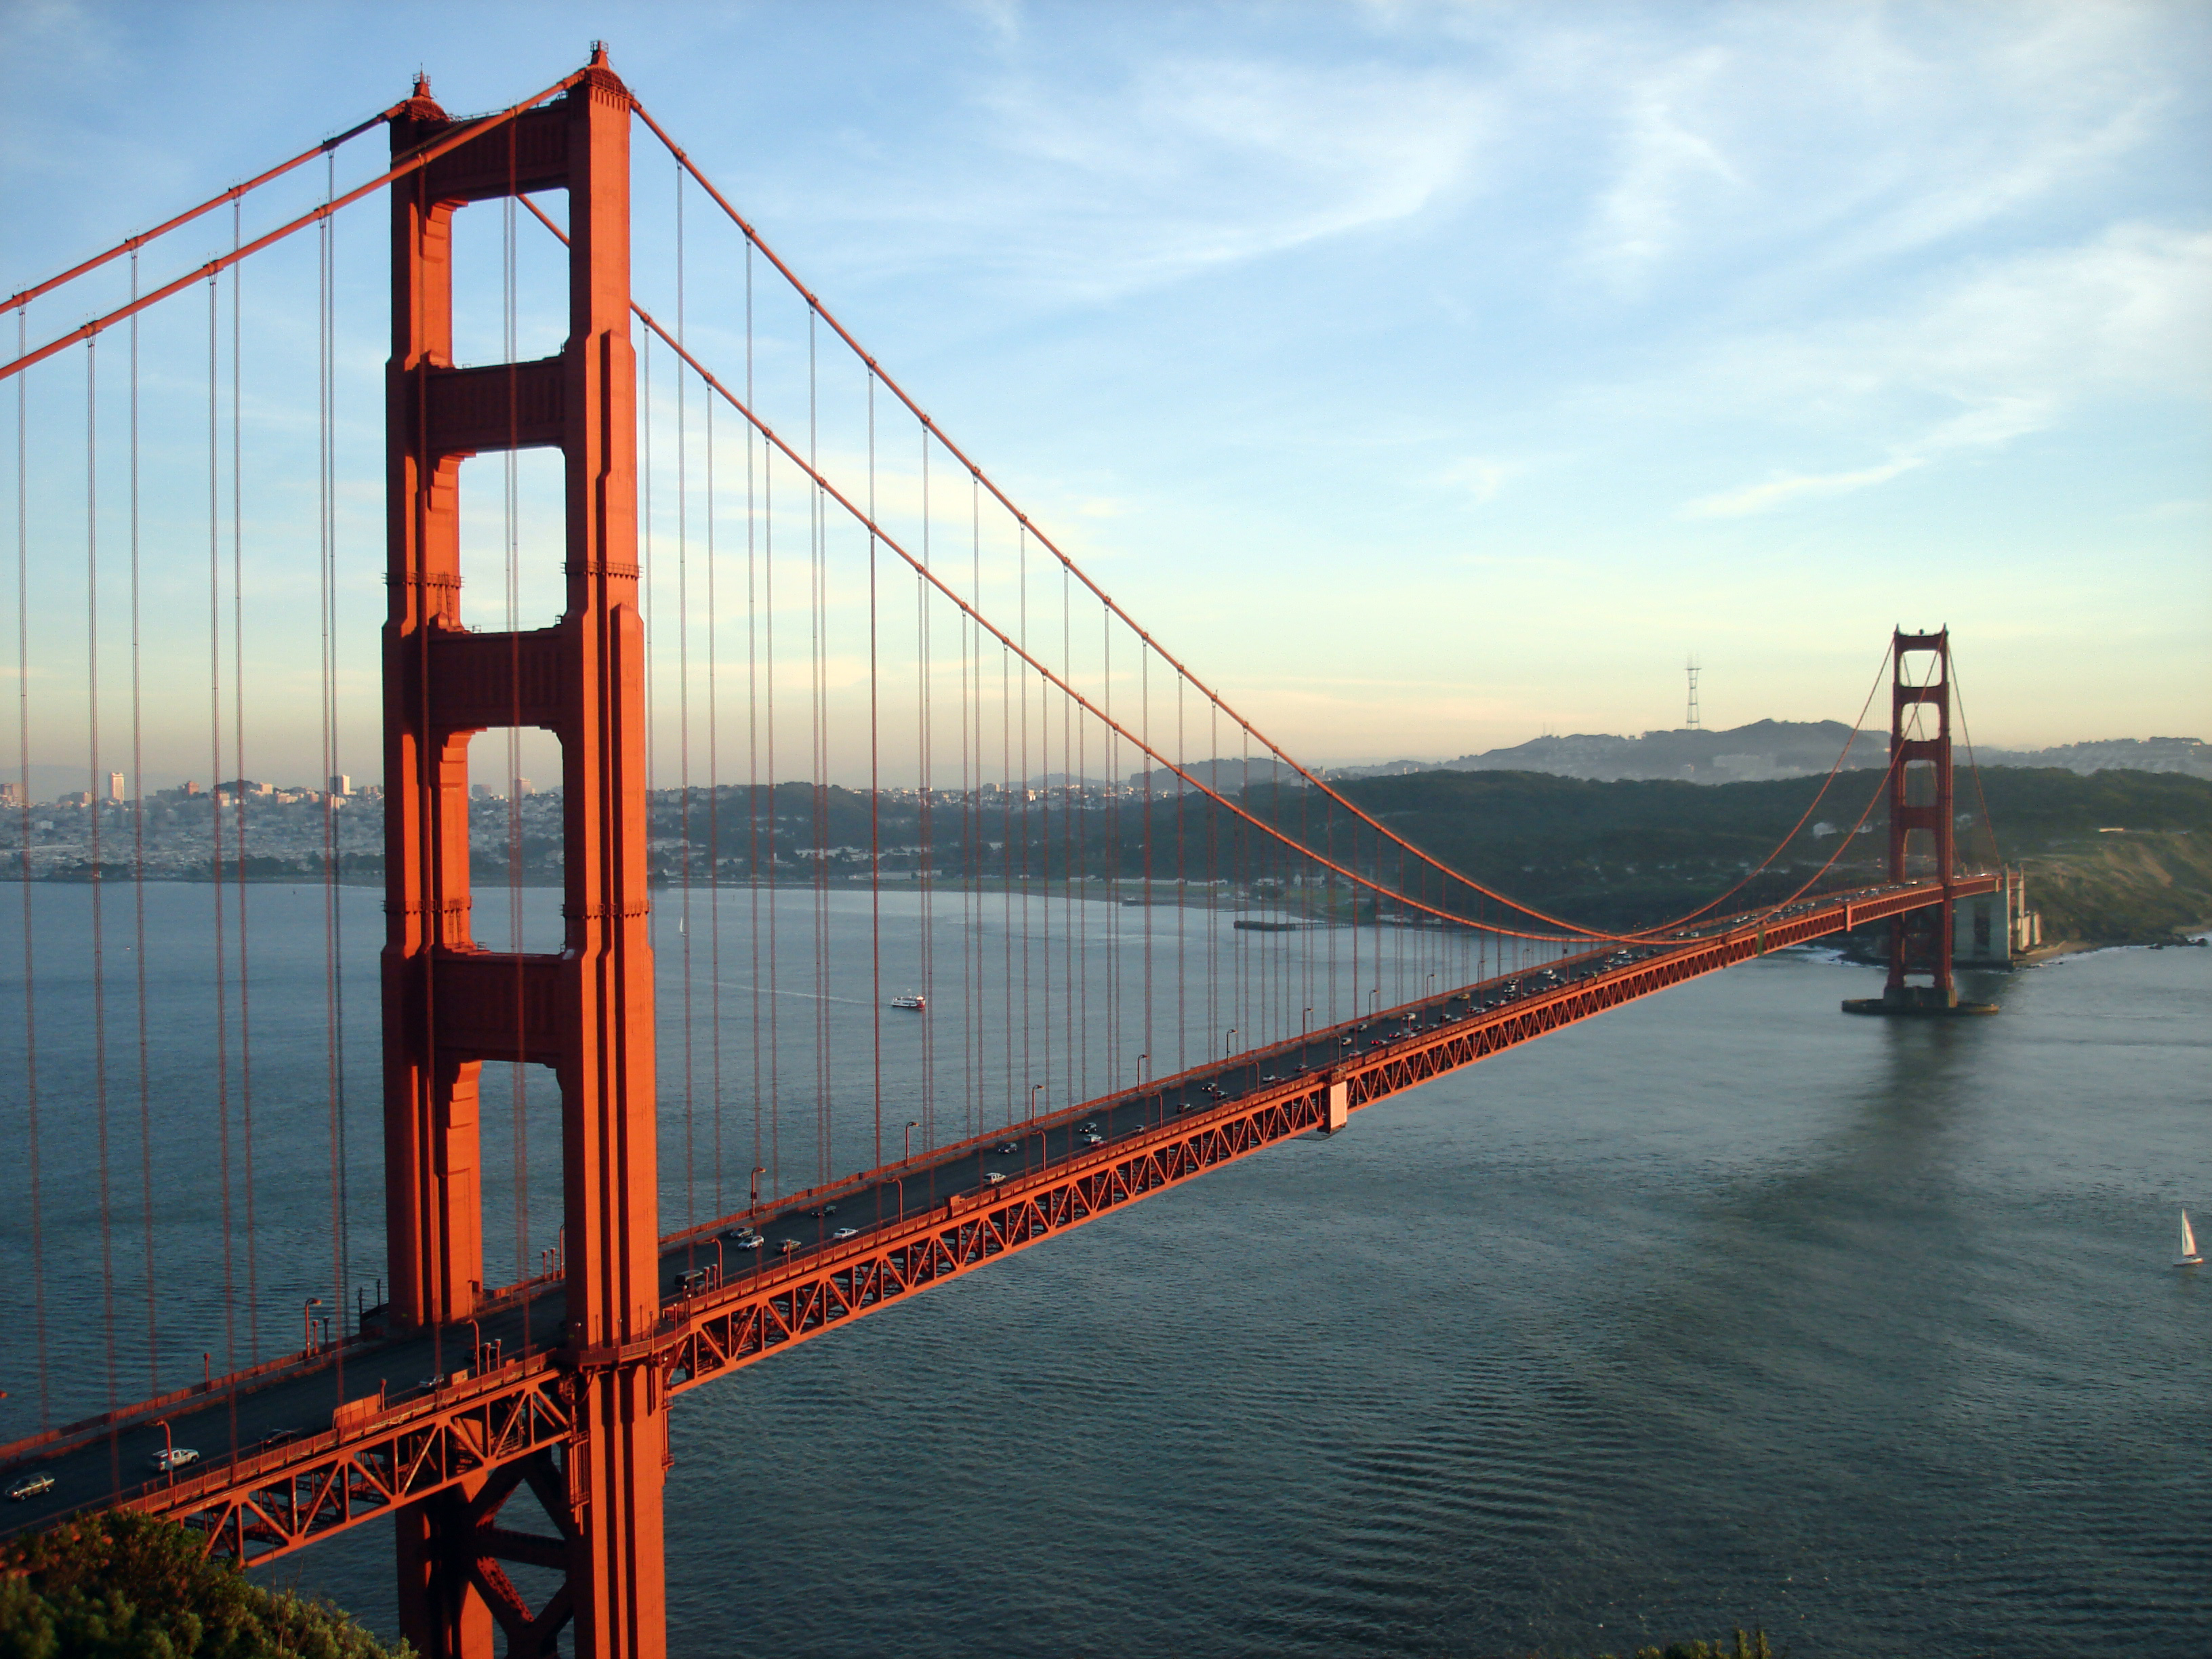 File:GoldenGateBridge-001.jpg - Wikipedia